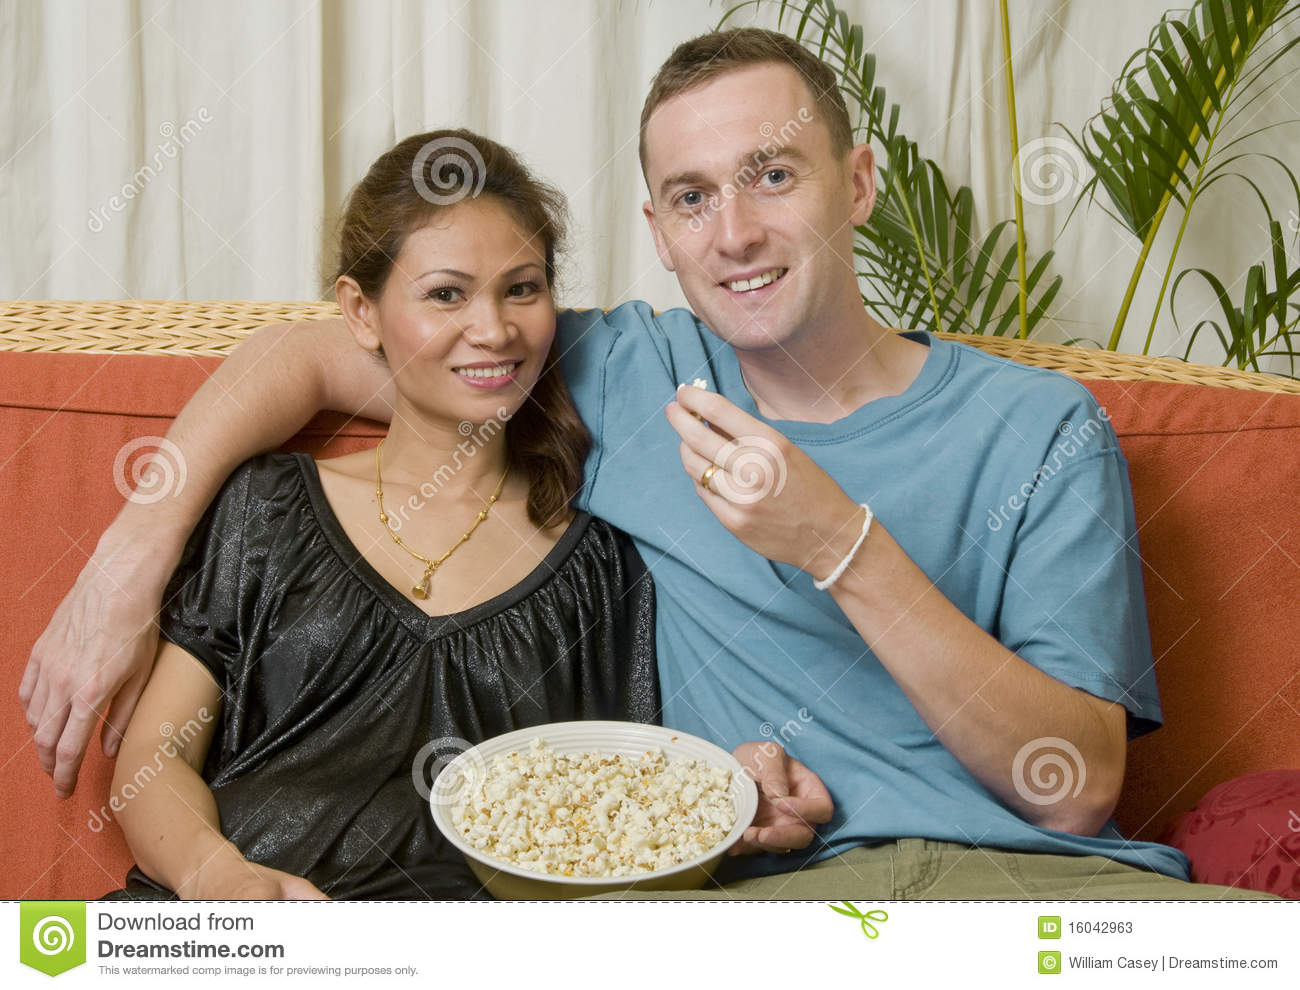 Interacial Minimalist young interacial couple stock image. image of happy, caucasian